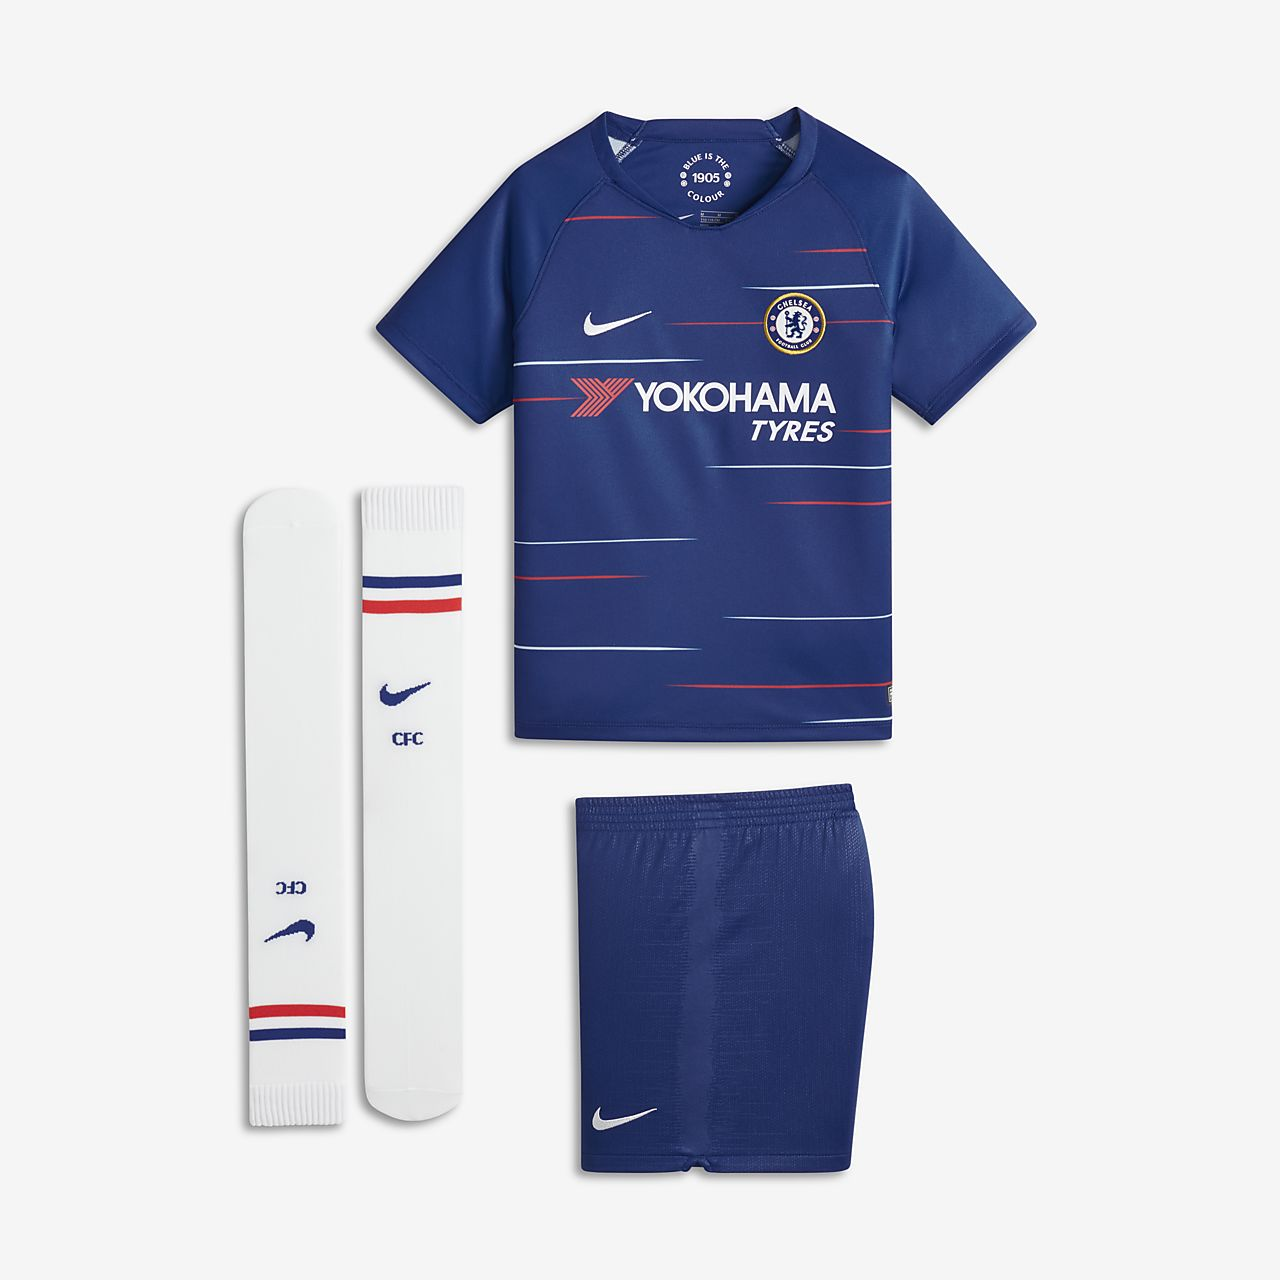 1c2250176cd 2018/19 Chelsea FC Stadium Home Younger Kids' Football Kit. Nike.com AE